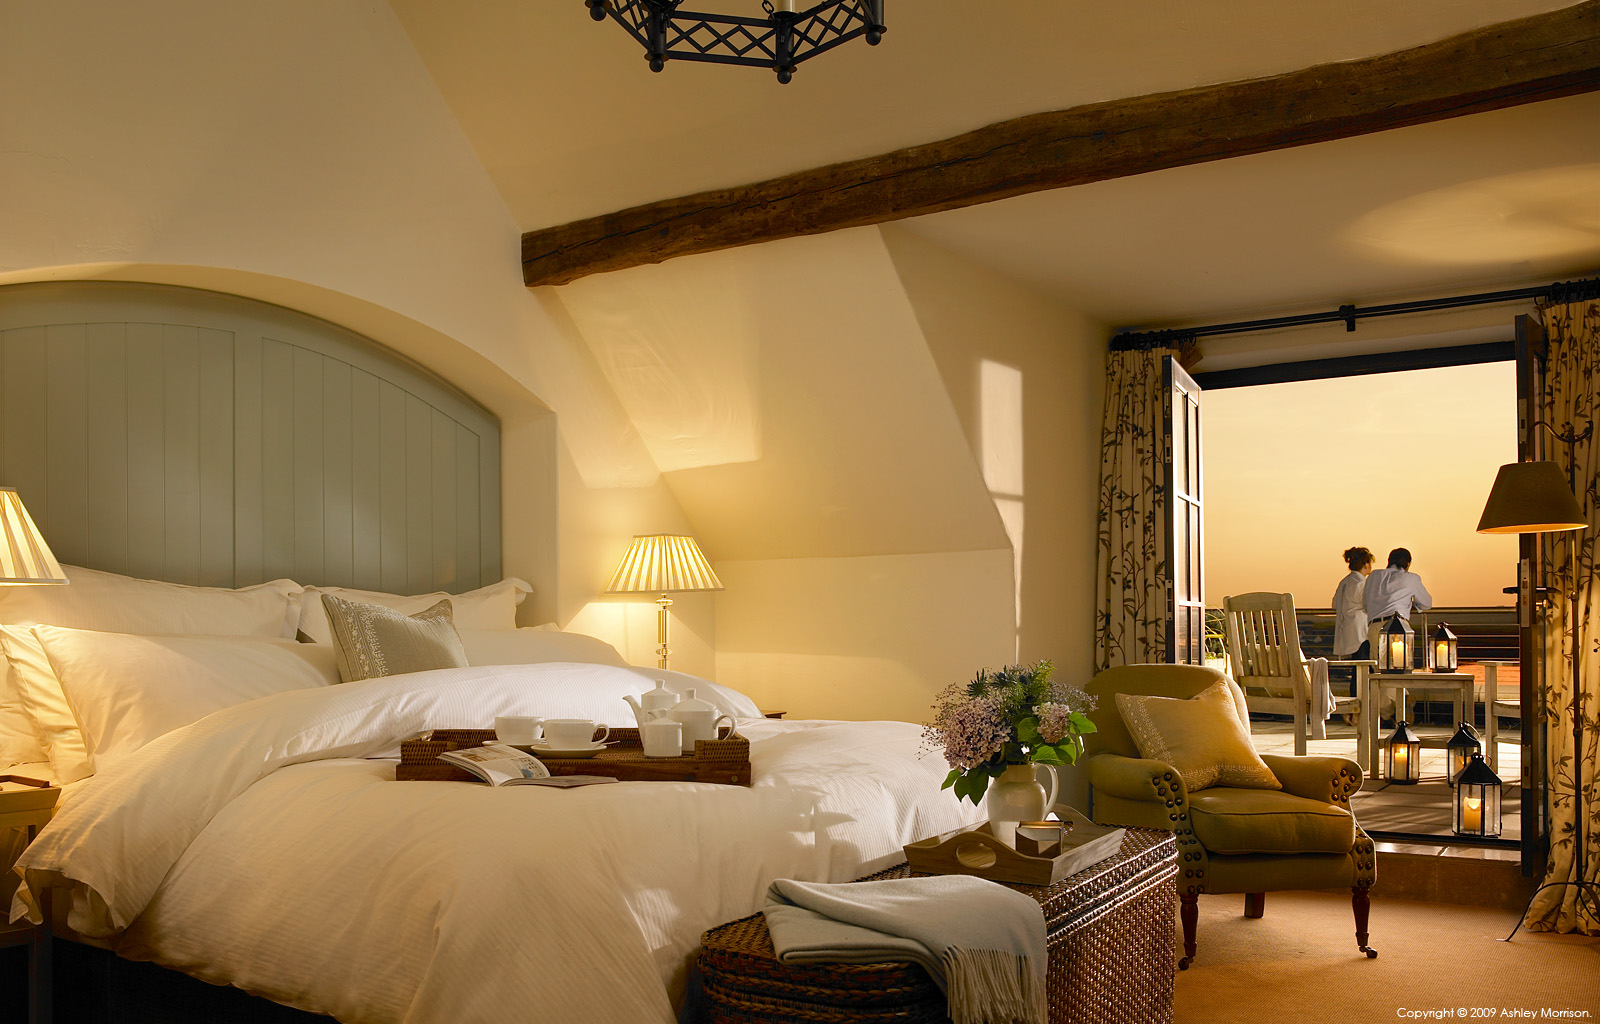 One of the courtyard bedroom suites at the Trump International Golf Links & Hotel in County Clare by Ashley Morrison.